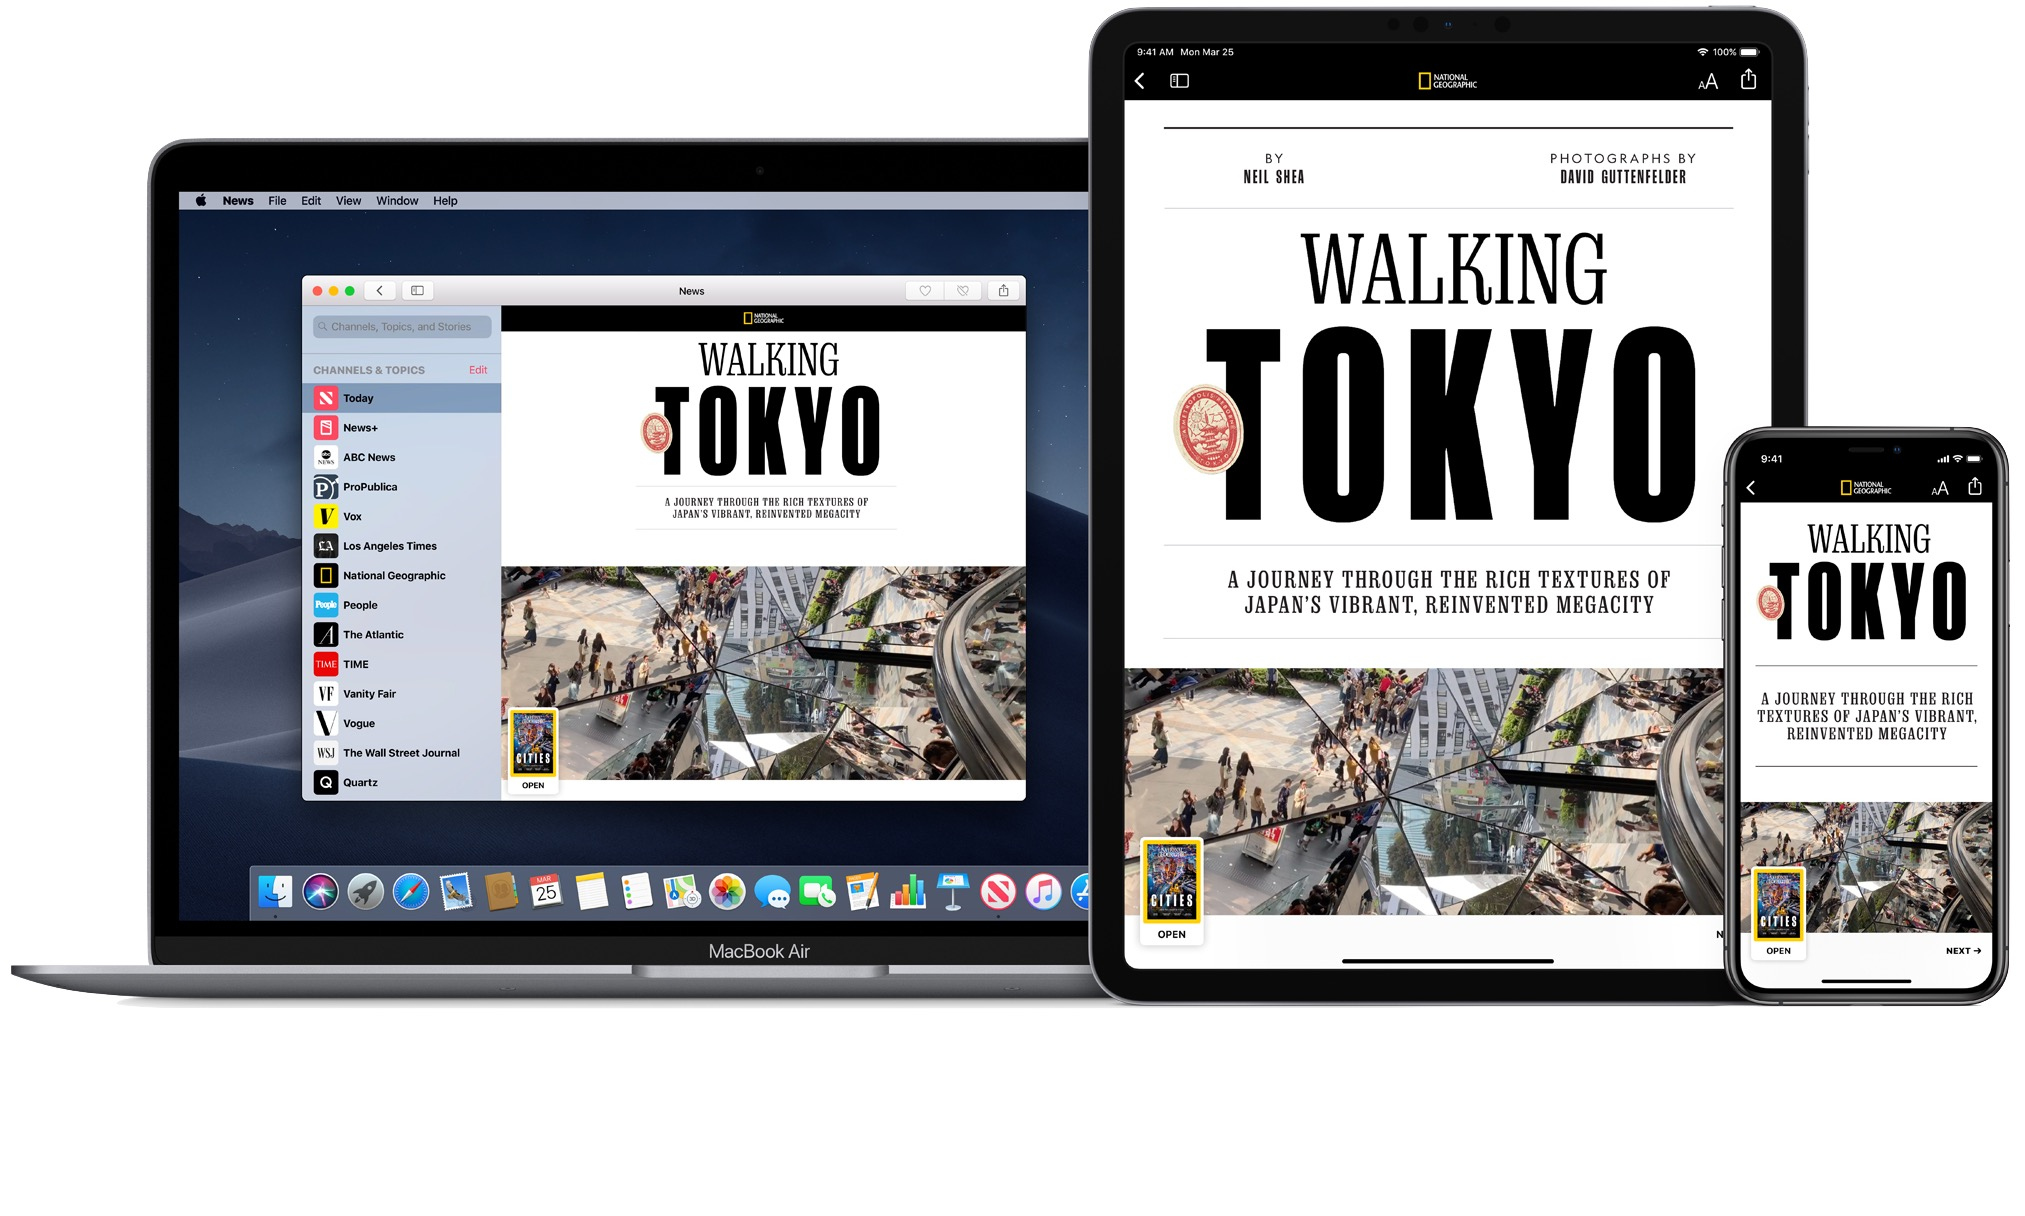 Apple News+ Debuts With Magazines, Newspapers, and Web Sites